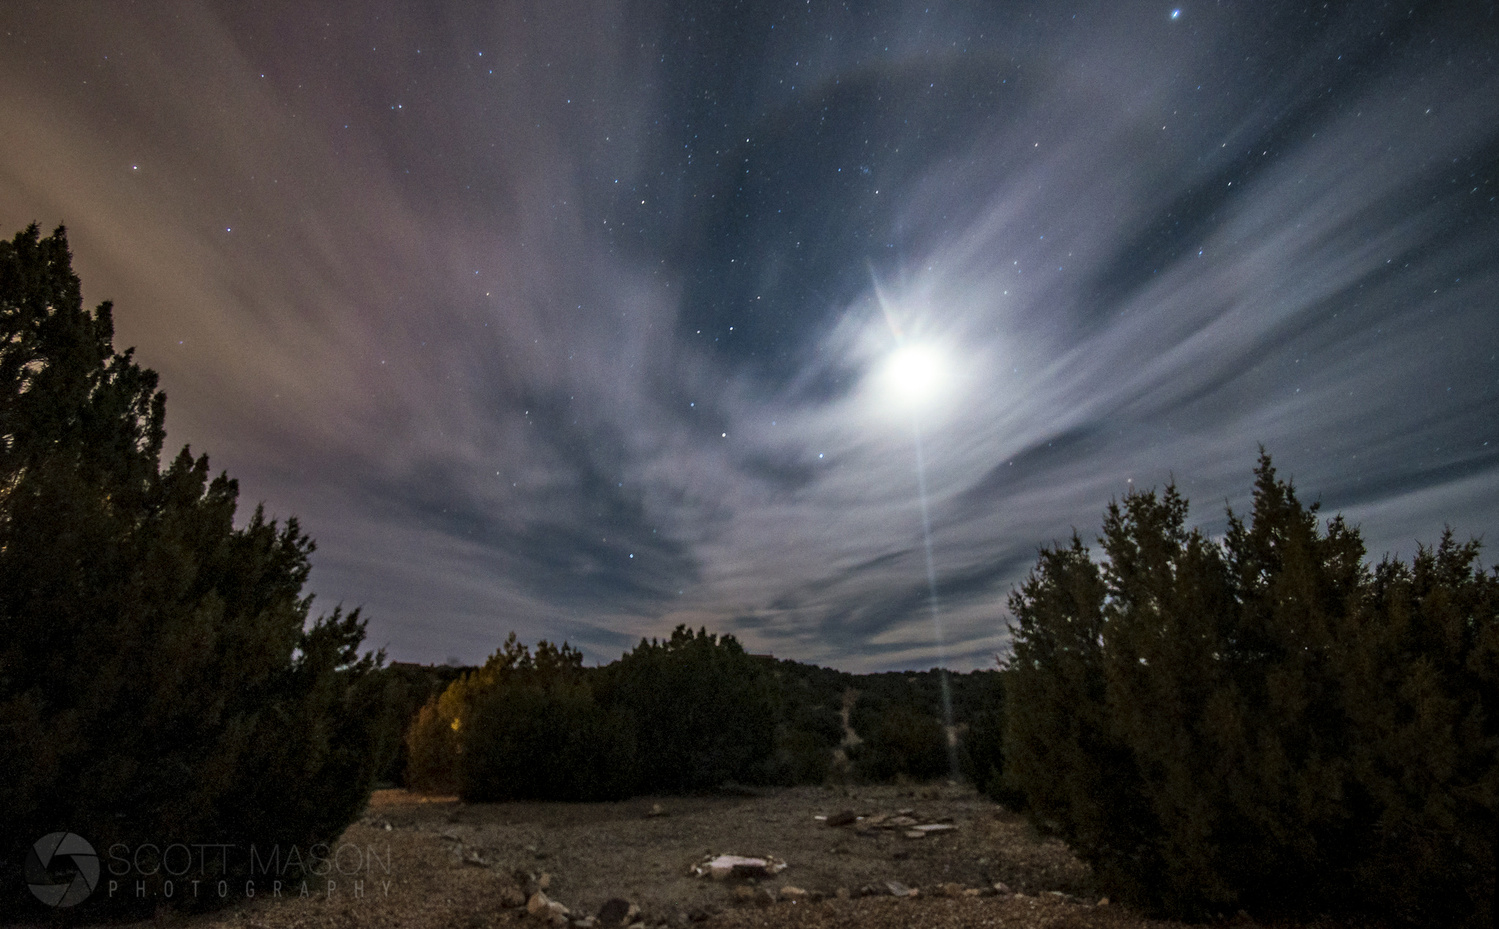 a photo of the moon with a halo around it with a desert landscape below